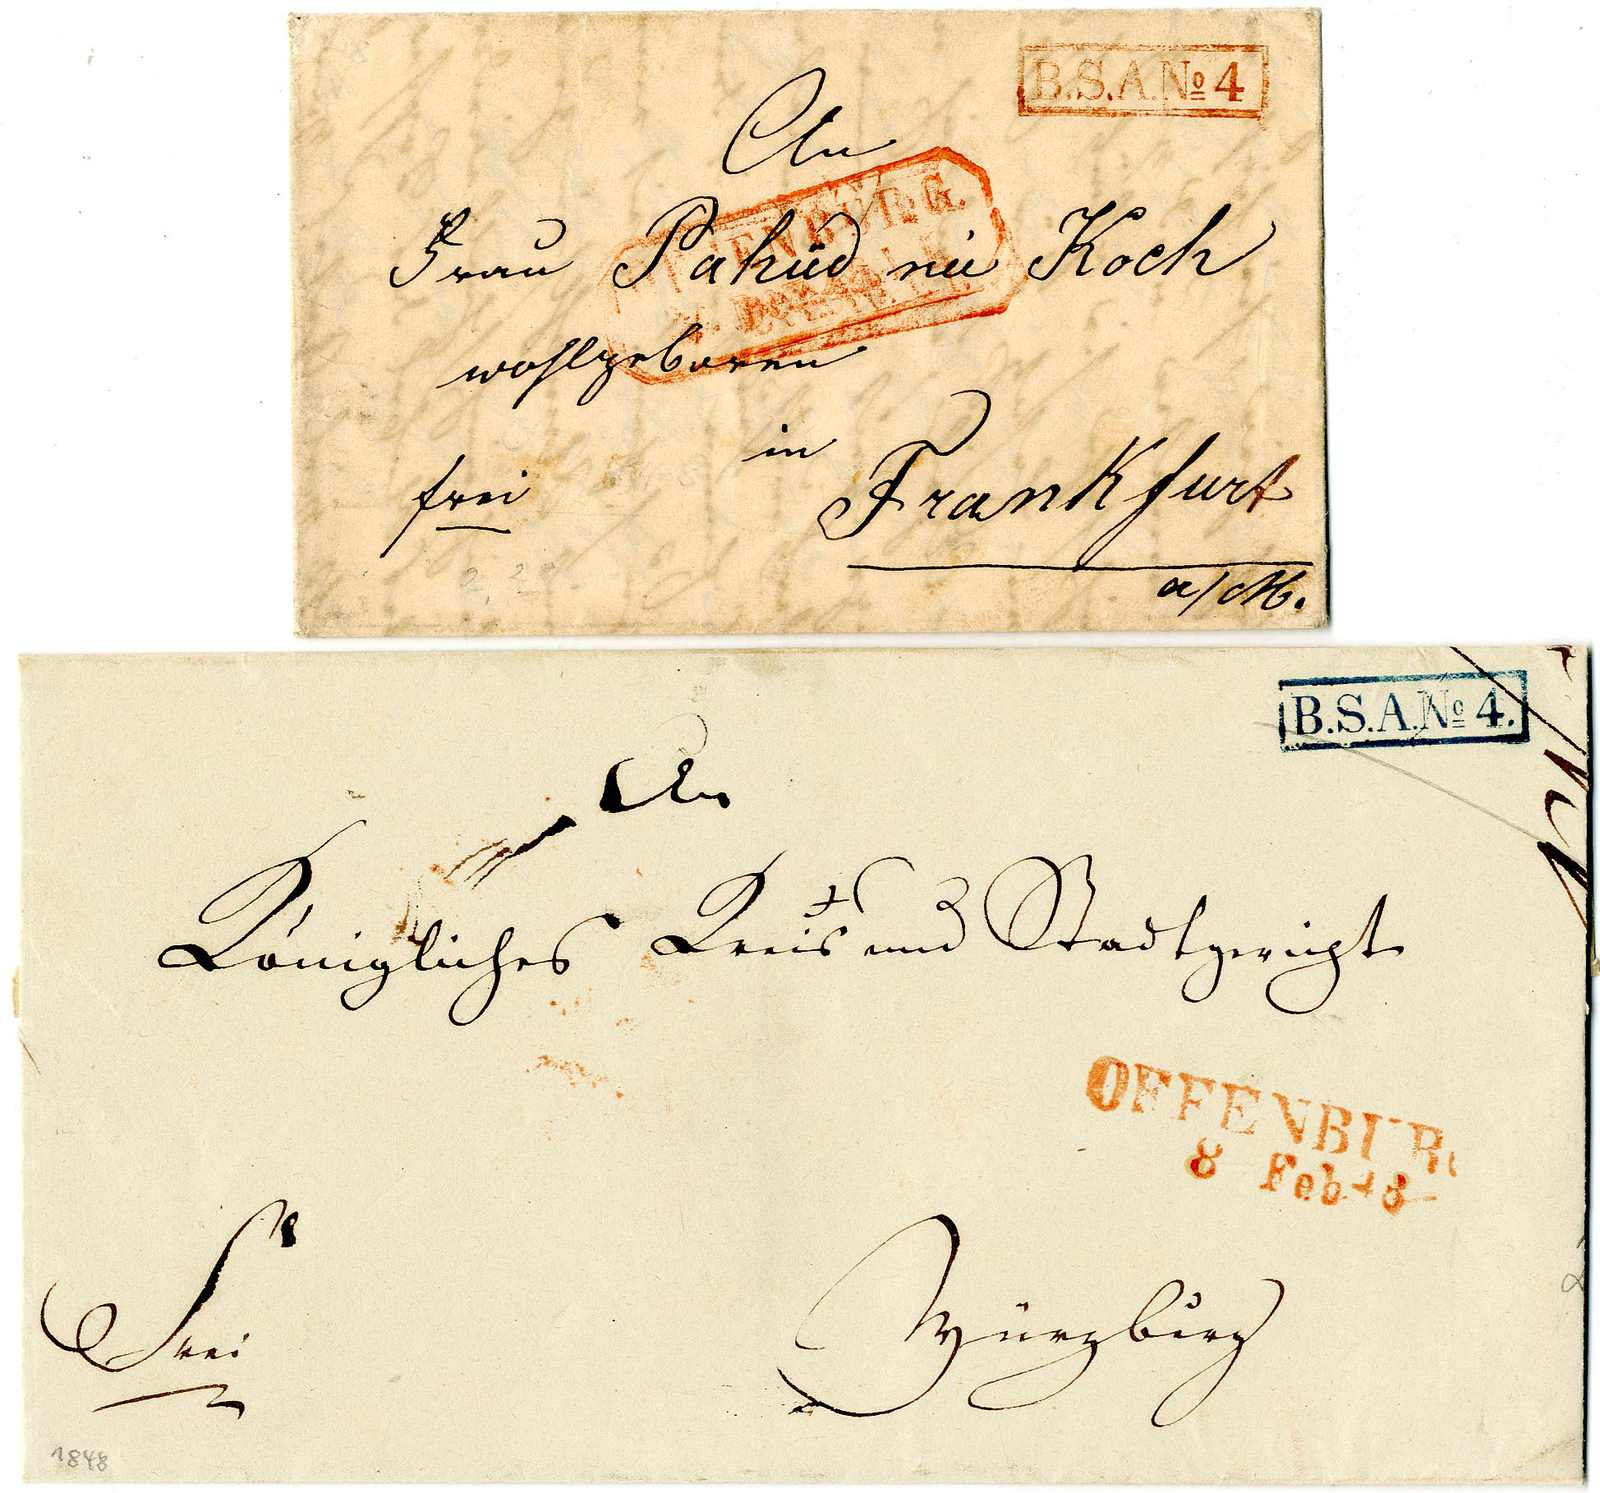 Lot 5 - Altdeutschland Baden, Vorphilatelie  -  Karl Pfankuch & Co. auction #222